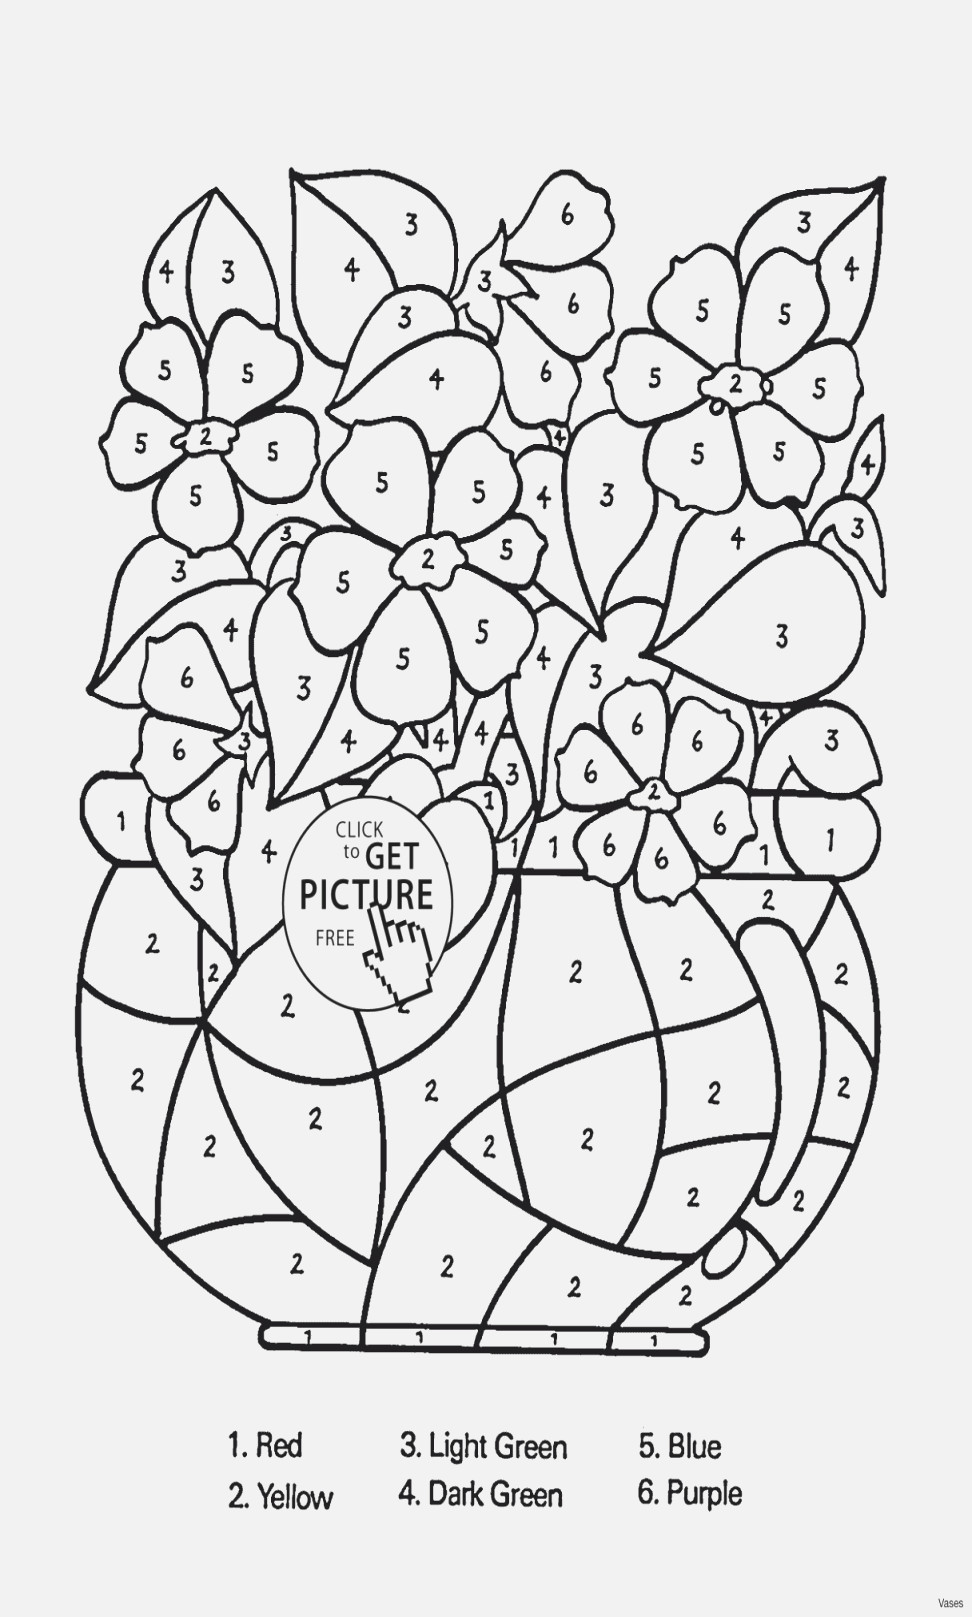 flowers that last long in a vase of easy coloring pictures vases flower vase coloring page pages flowers within easy coloring pictures vases flower vase coloring page pages flowers in a top i 0d and free